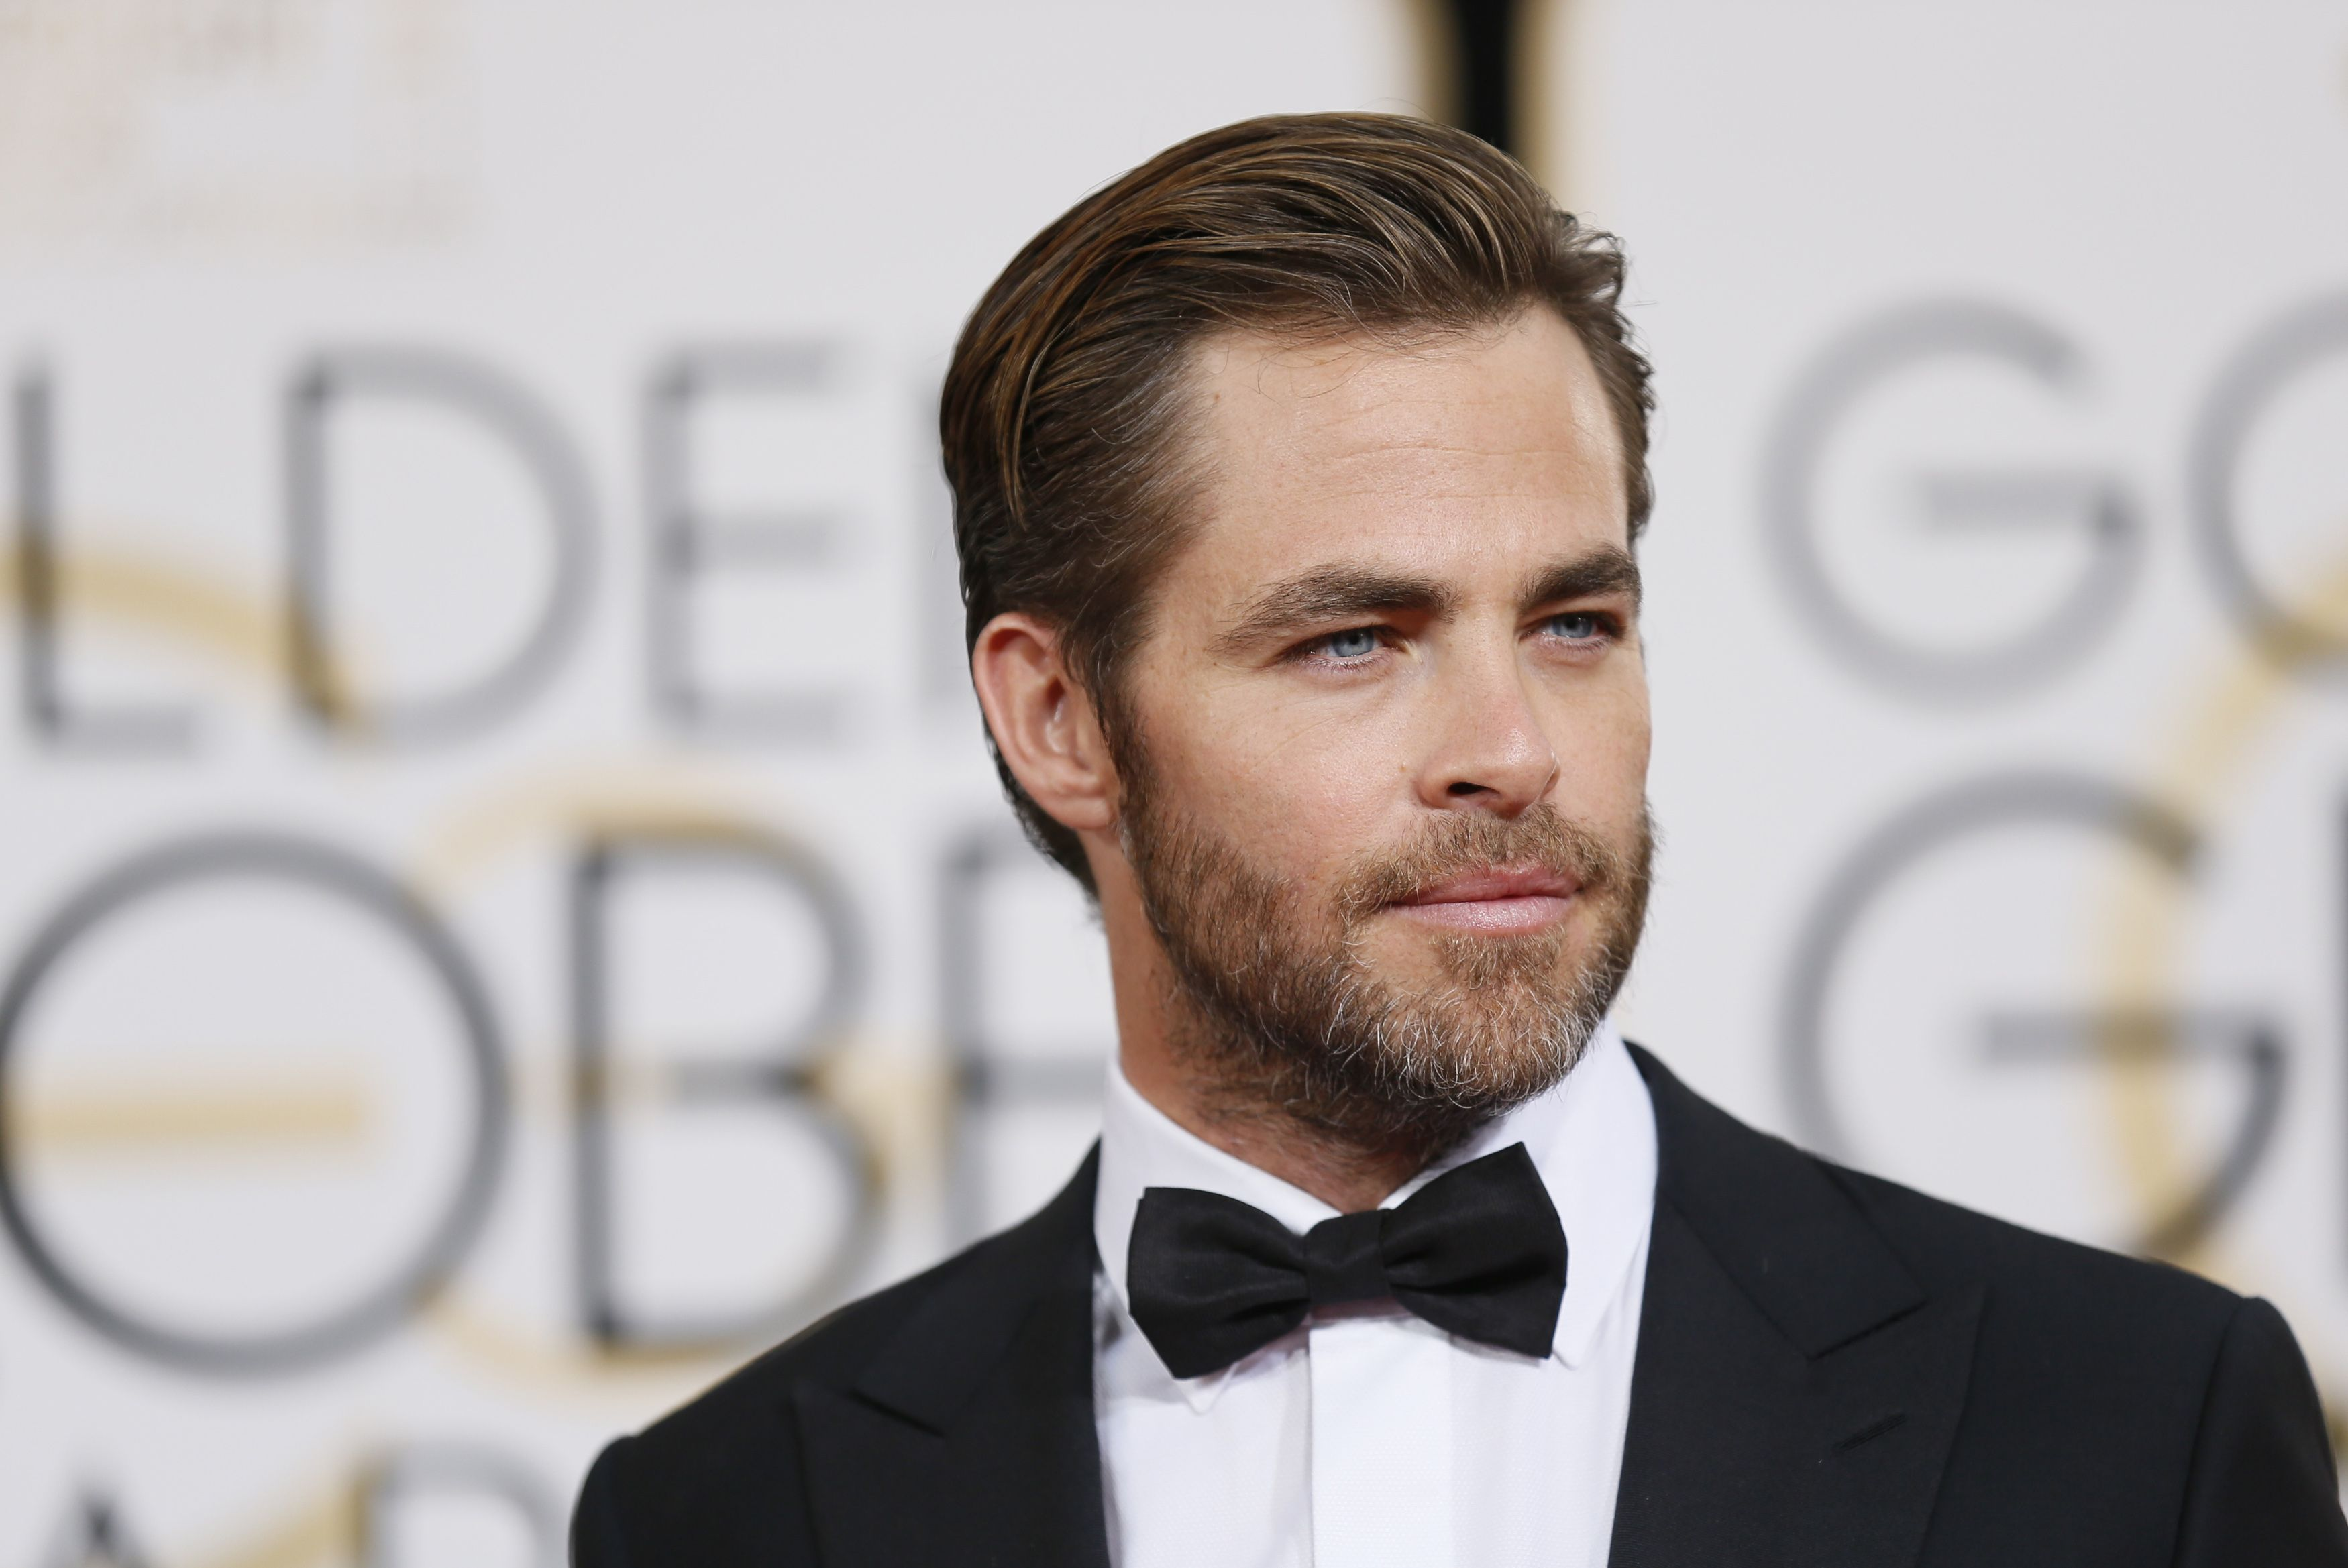 chris pine wallpaper hd download